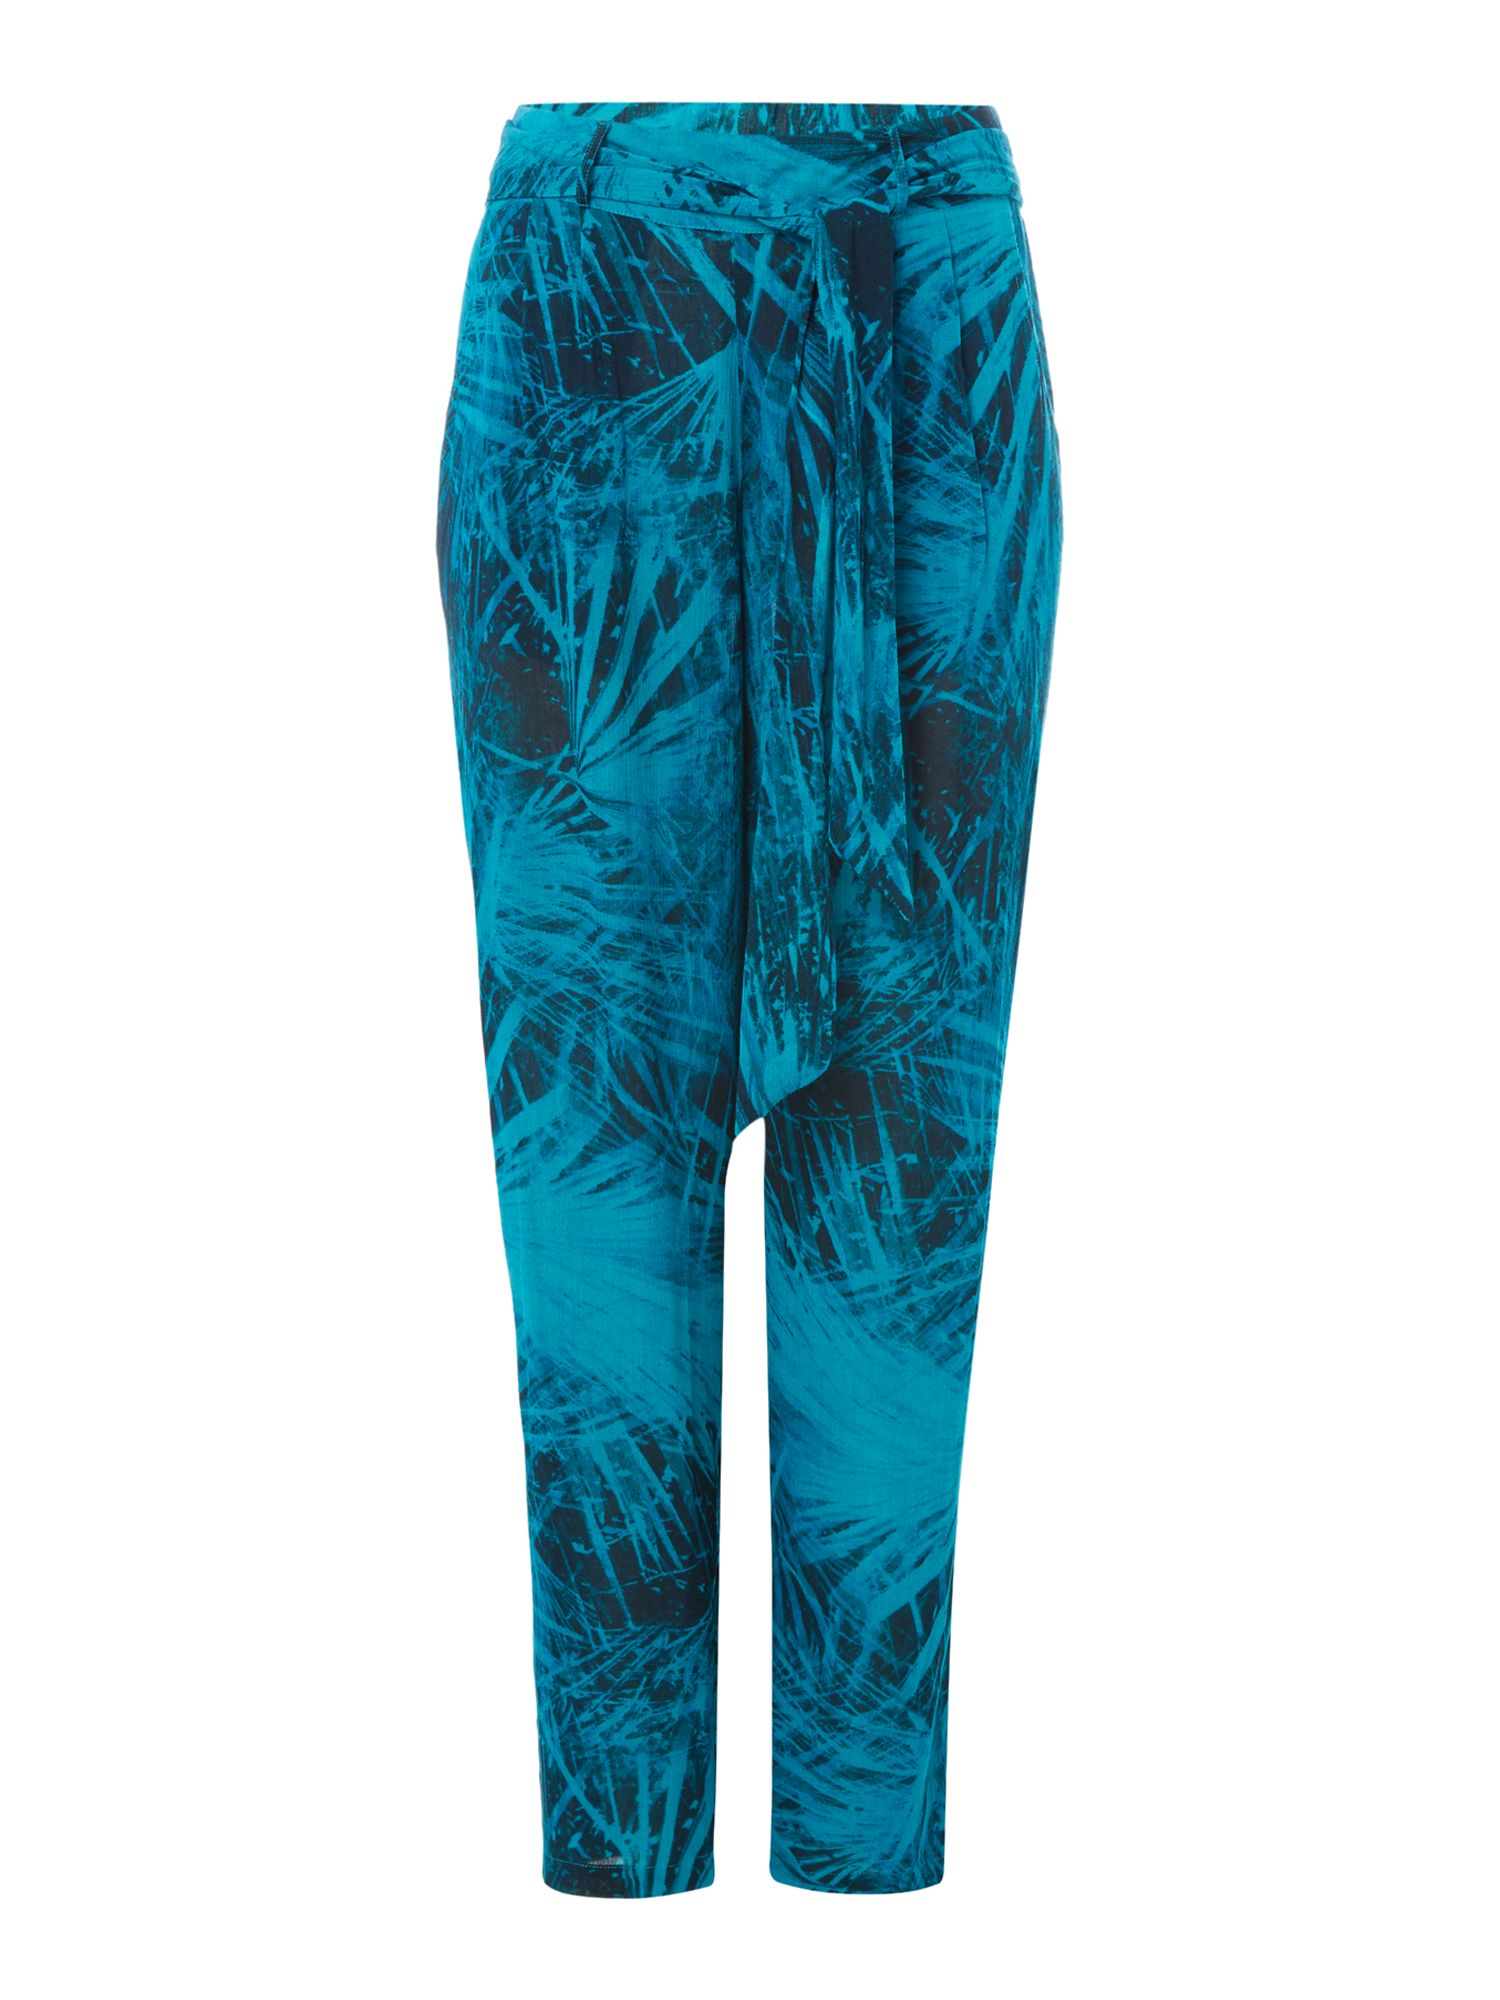 Label Lab Crinkle Palm Print Trouser, Dark Green